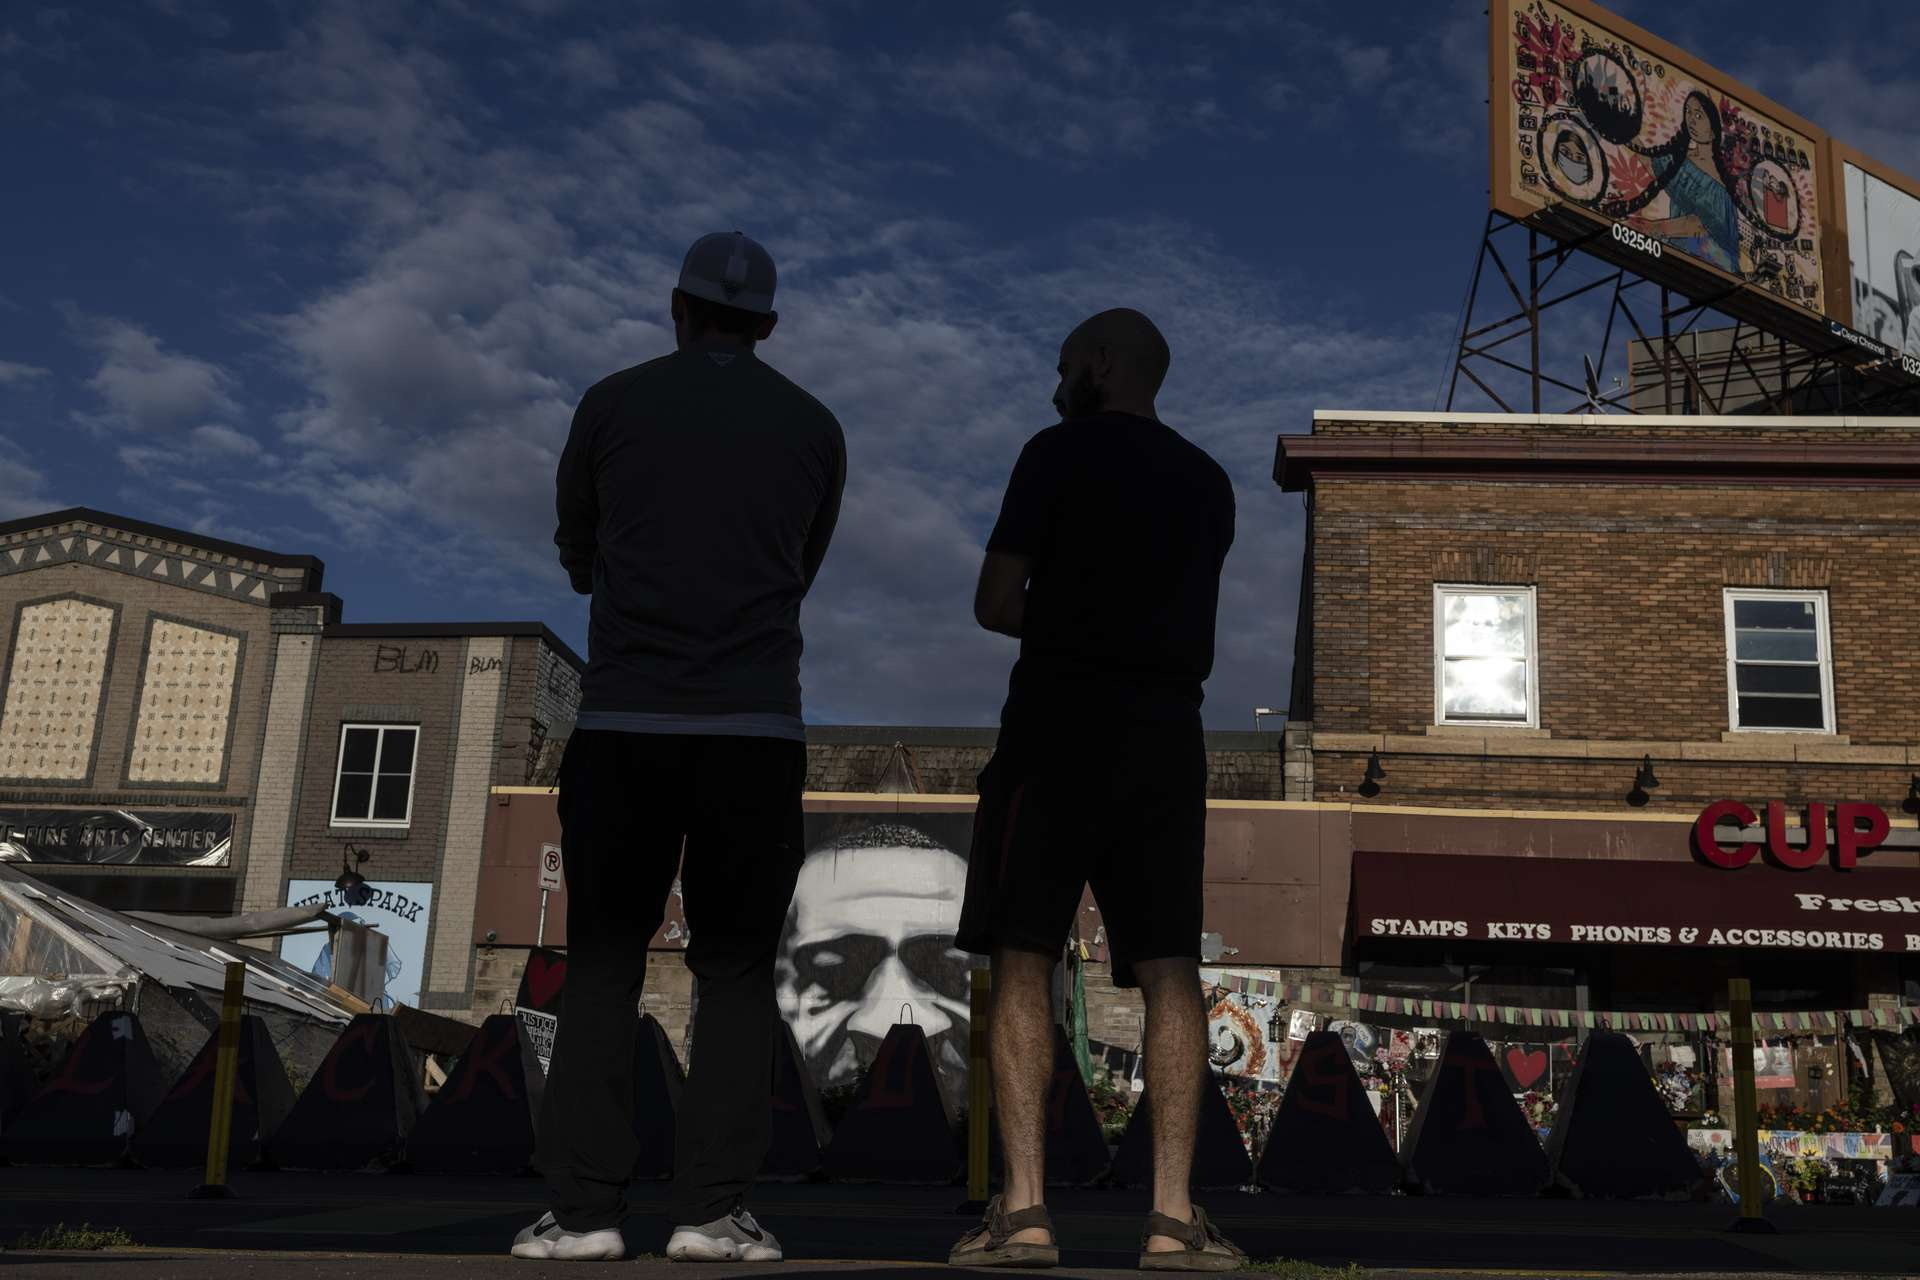 After Floyd's killing, Minneapolis police retreated, data shows